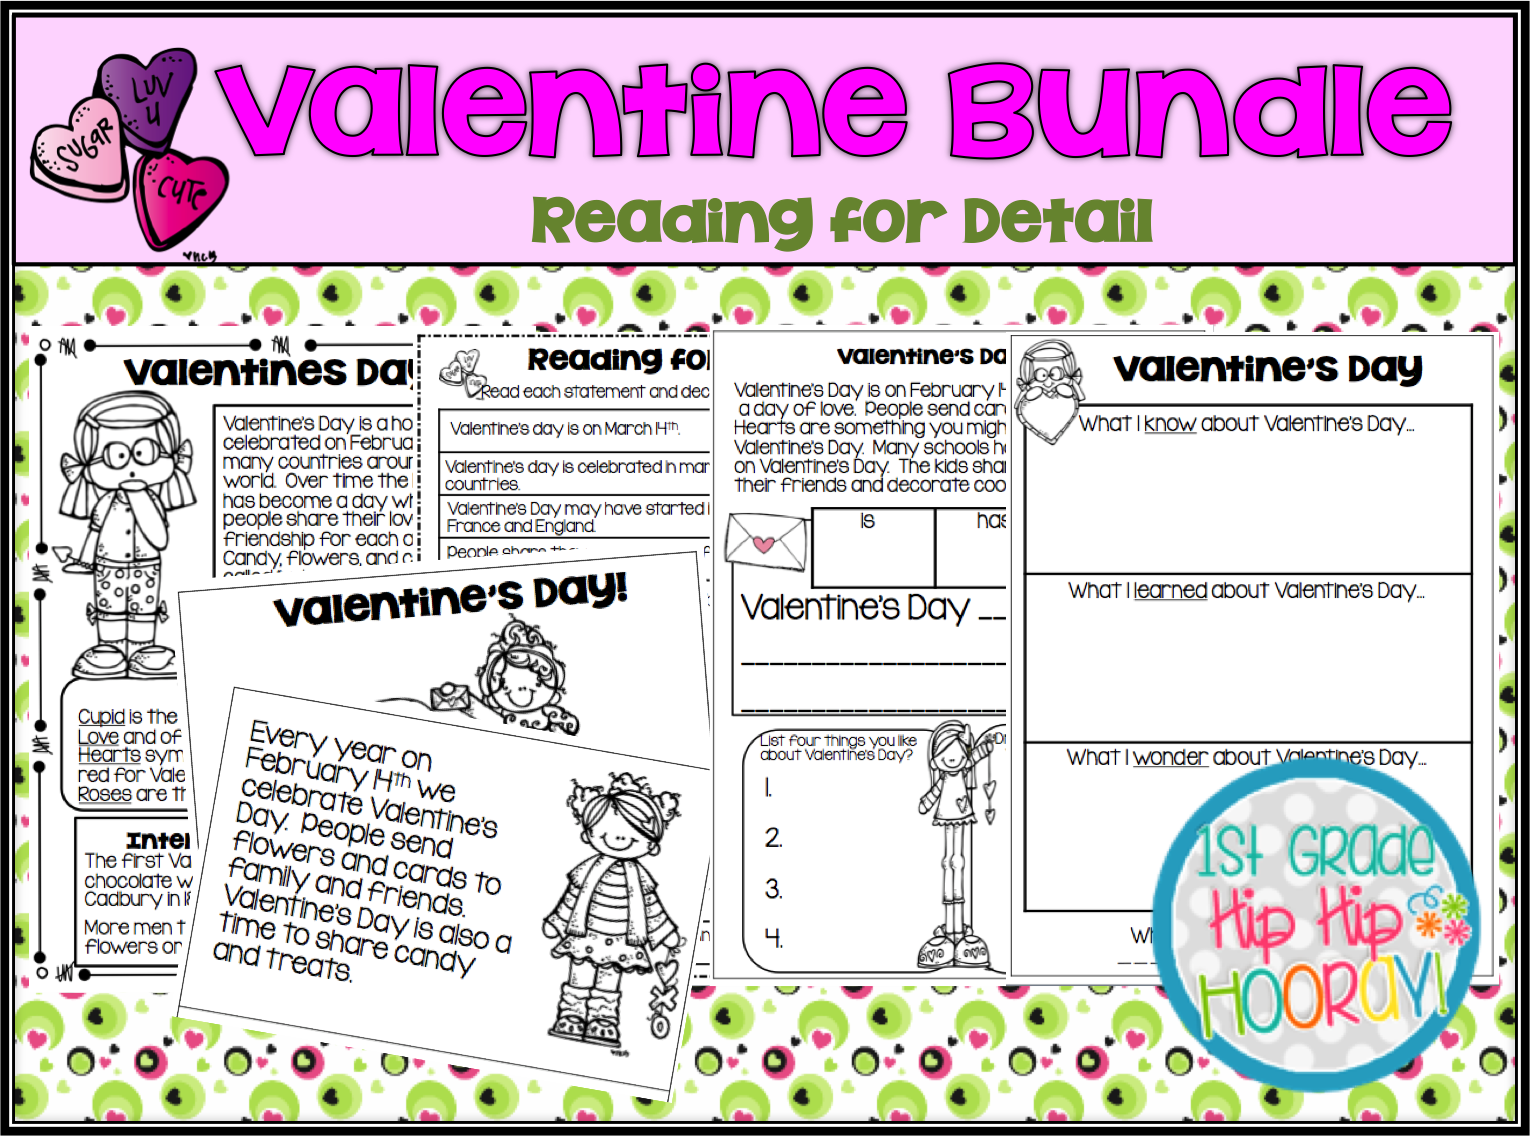 Valentines Day Quizzes for English Language Students